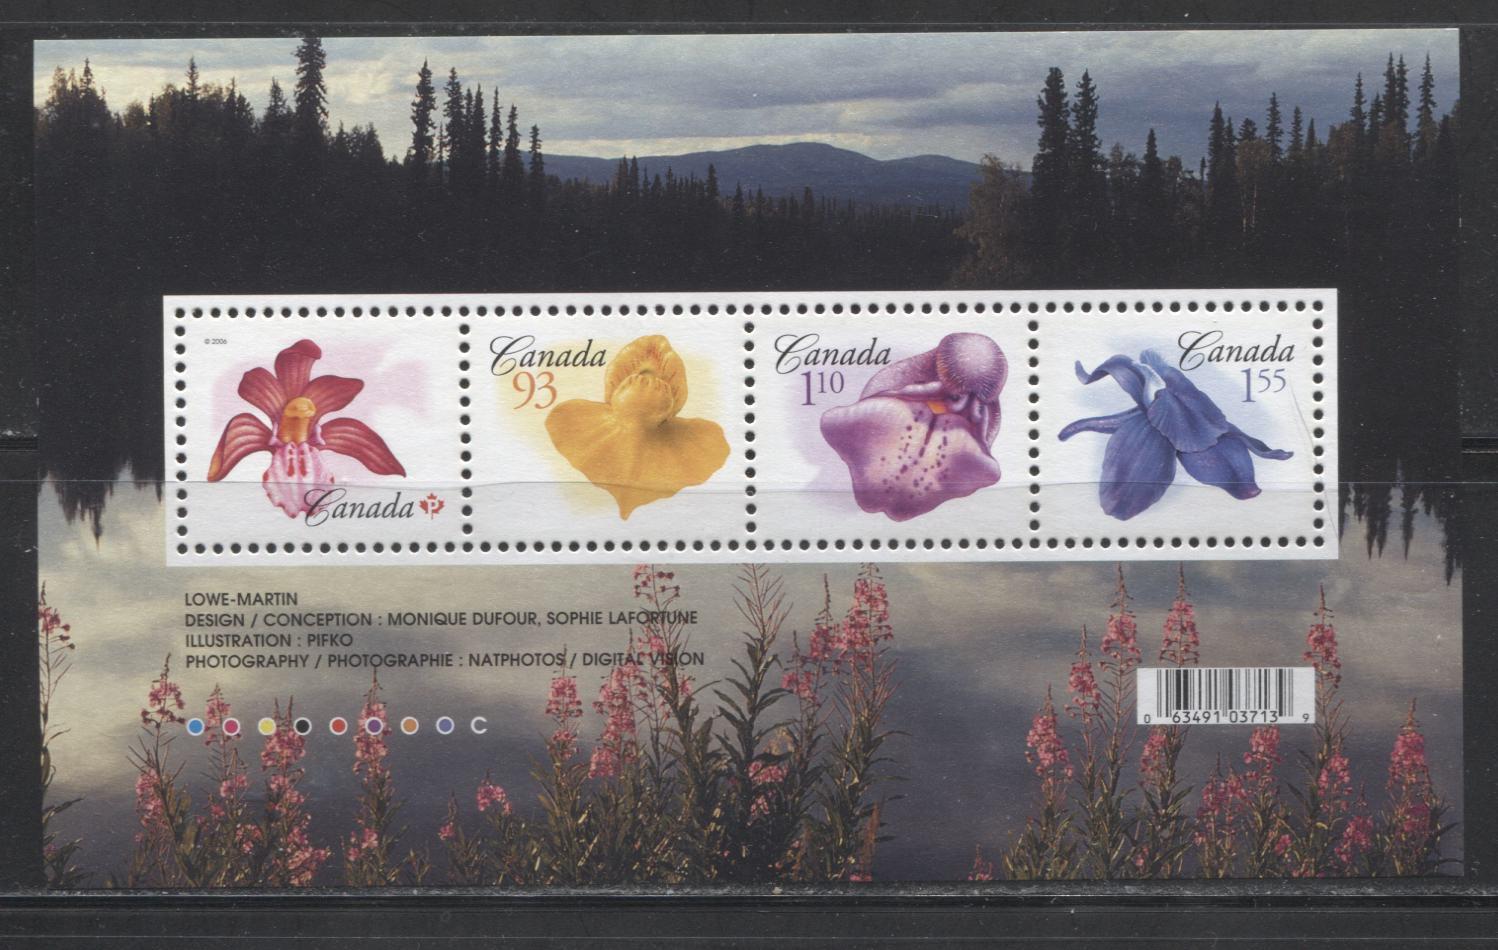 Canada #2194 $4.09 Multicolored 2006 Flower Definitives Issues, A VFNH Souvenir Sheet